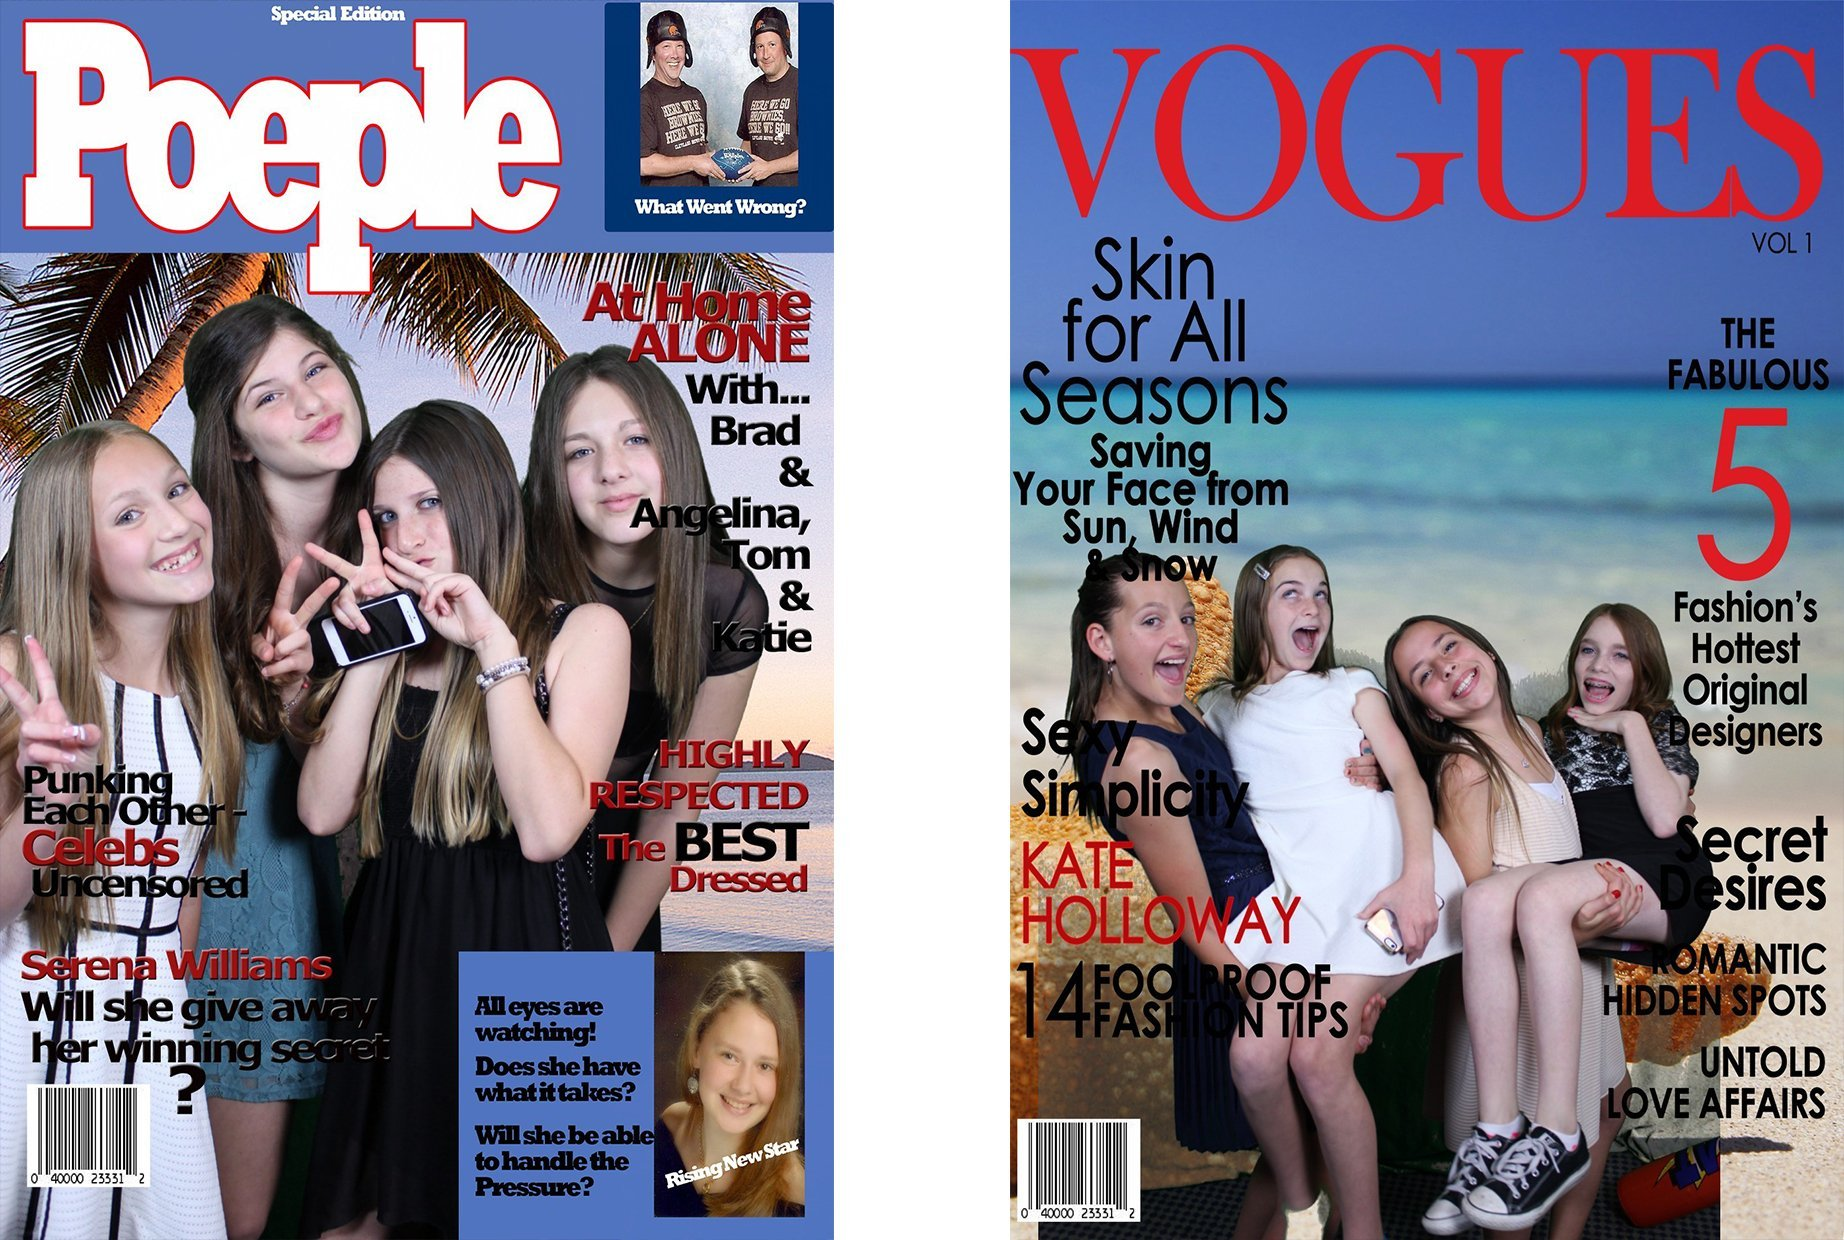 Green Screen Novelty Photos Magazine Covers for Events